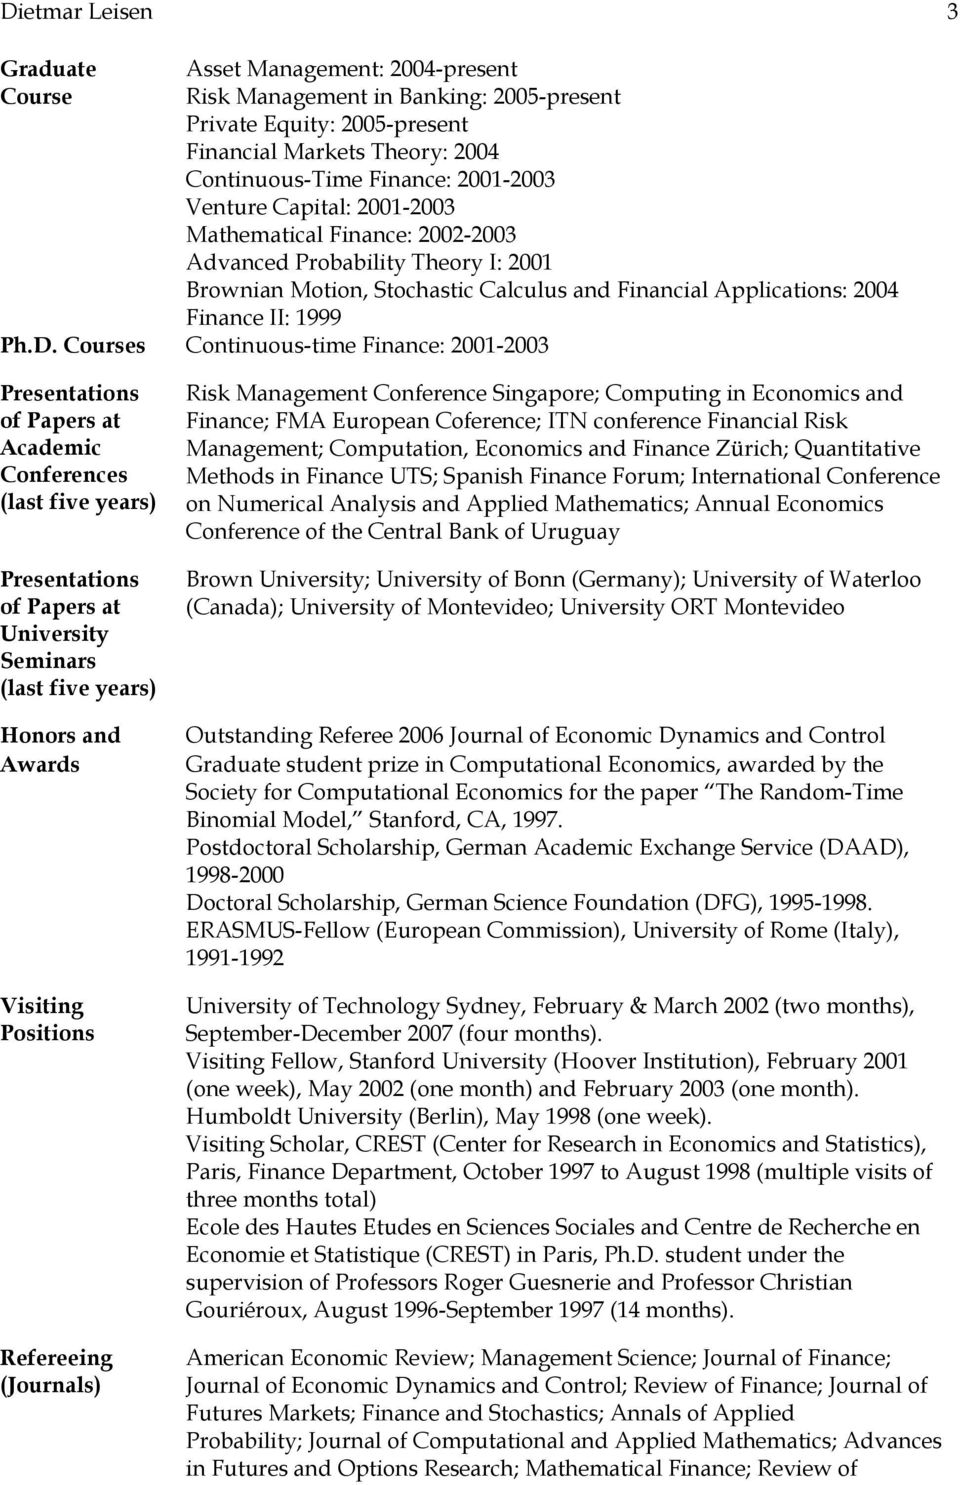 Courses Continuous-time Finance: 2001-2003 Presentations of Papers at Academic Conferences (last five years) Presentations of Papers at University Seminars (last five years) Honors and Awards